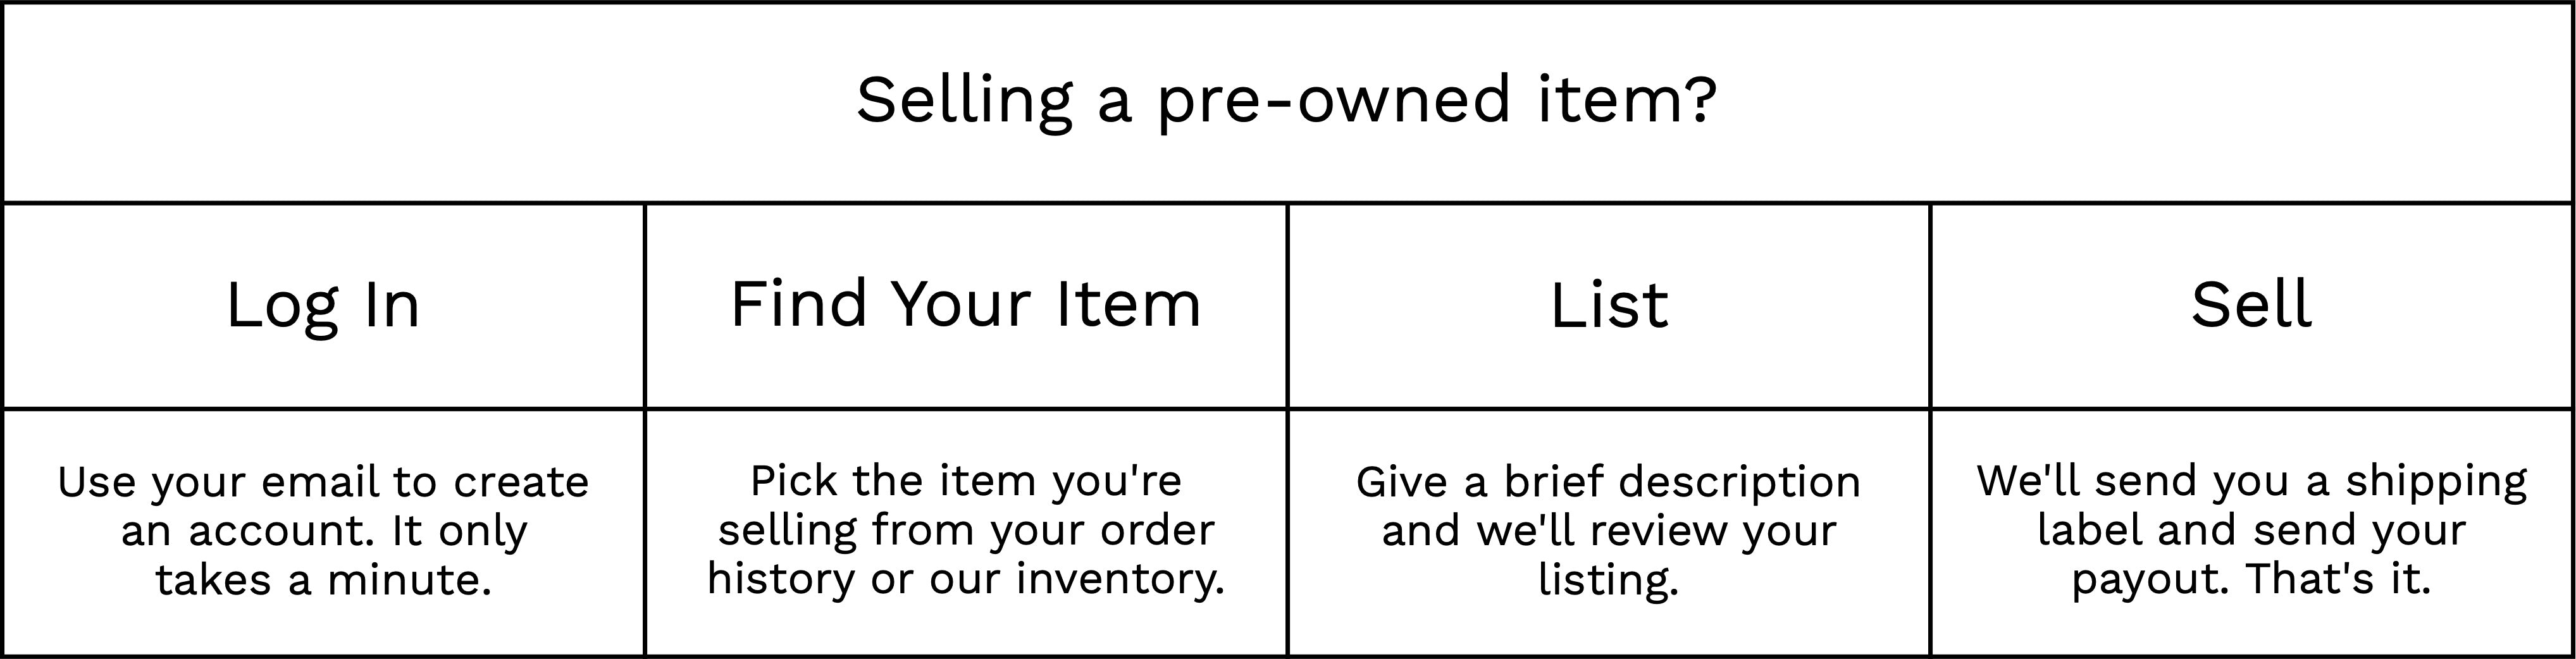 selling pre-owned process